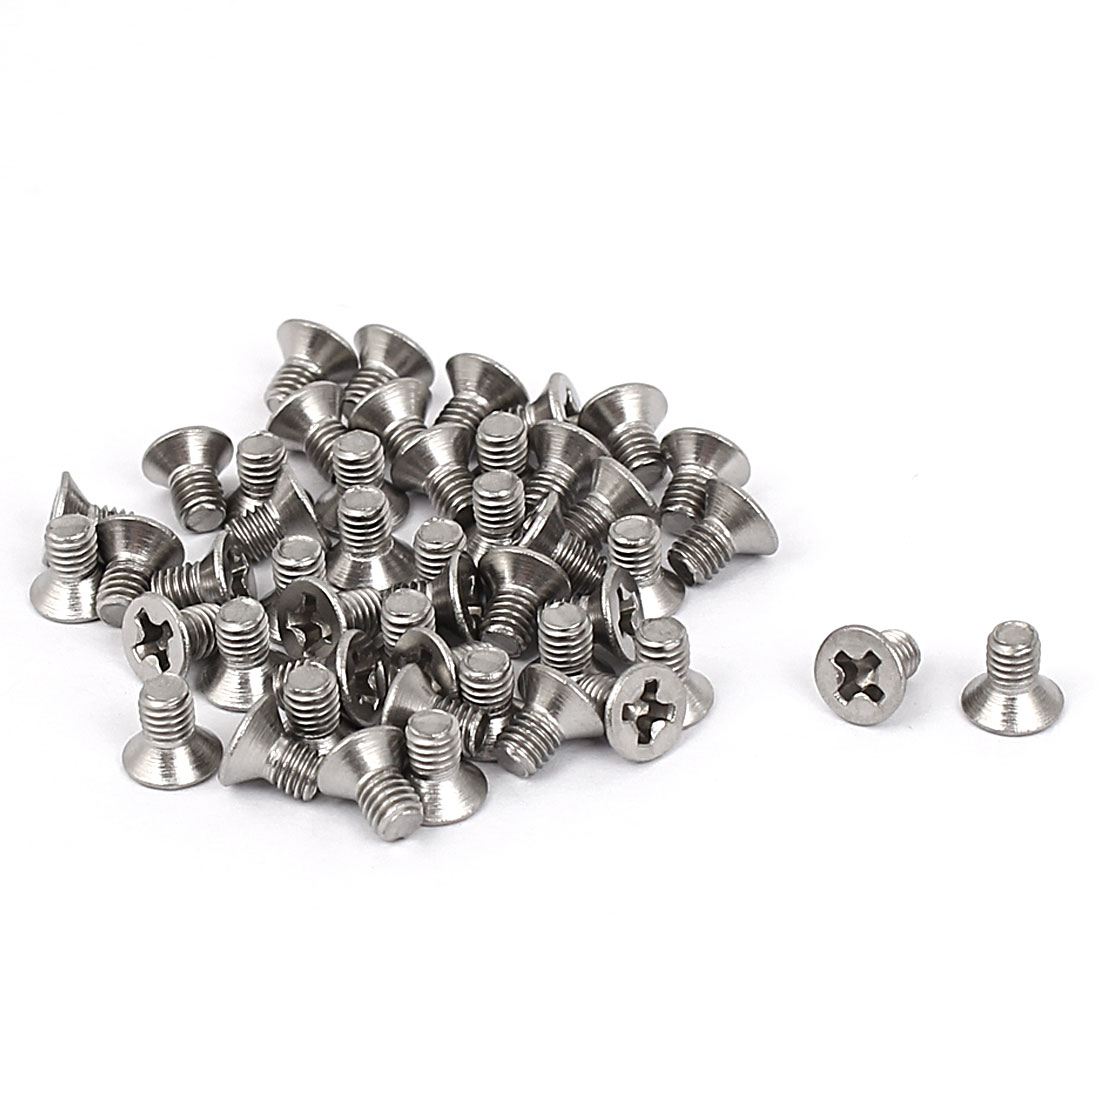 M3x5mm Phillips Flat Countersunk Head Machine Screws Silver Tone 50pcs